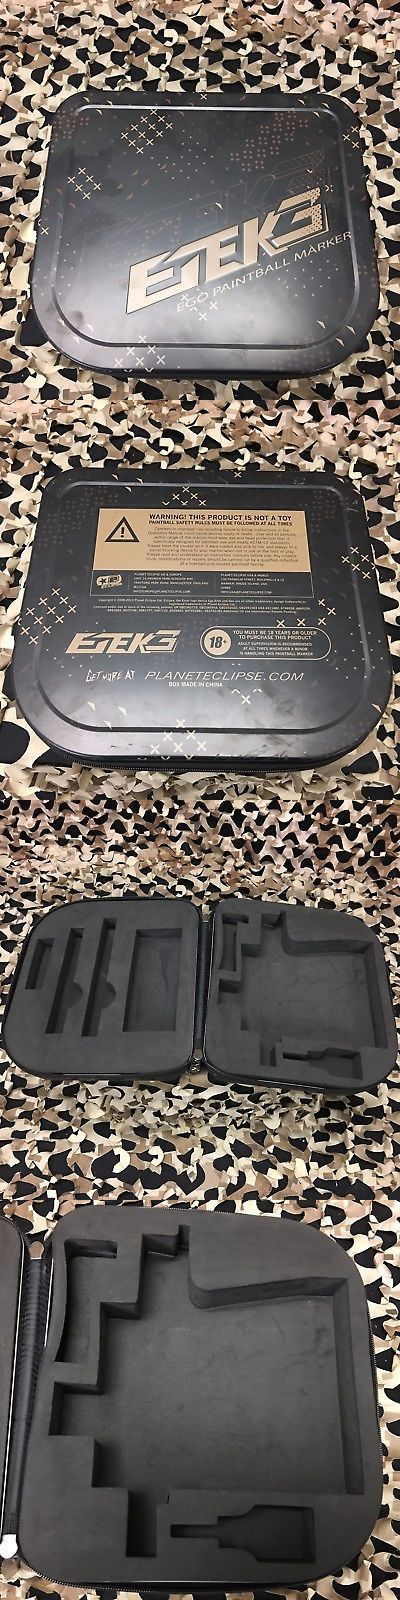 Other Paintball 10554: New Planet Eclipse Etek3 Paintball Gun Marker Case - Black -> BUY IT NOW ONLY: $40.95 on eBay!